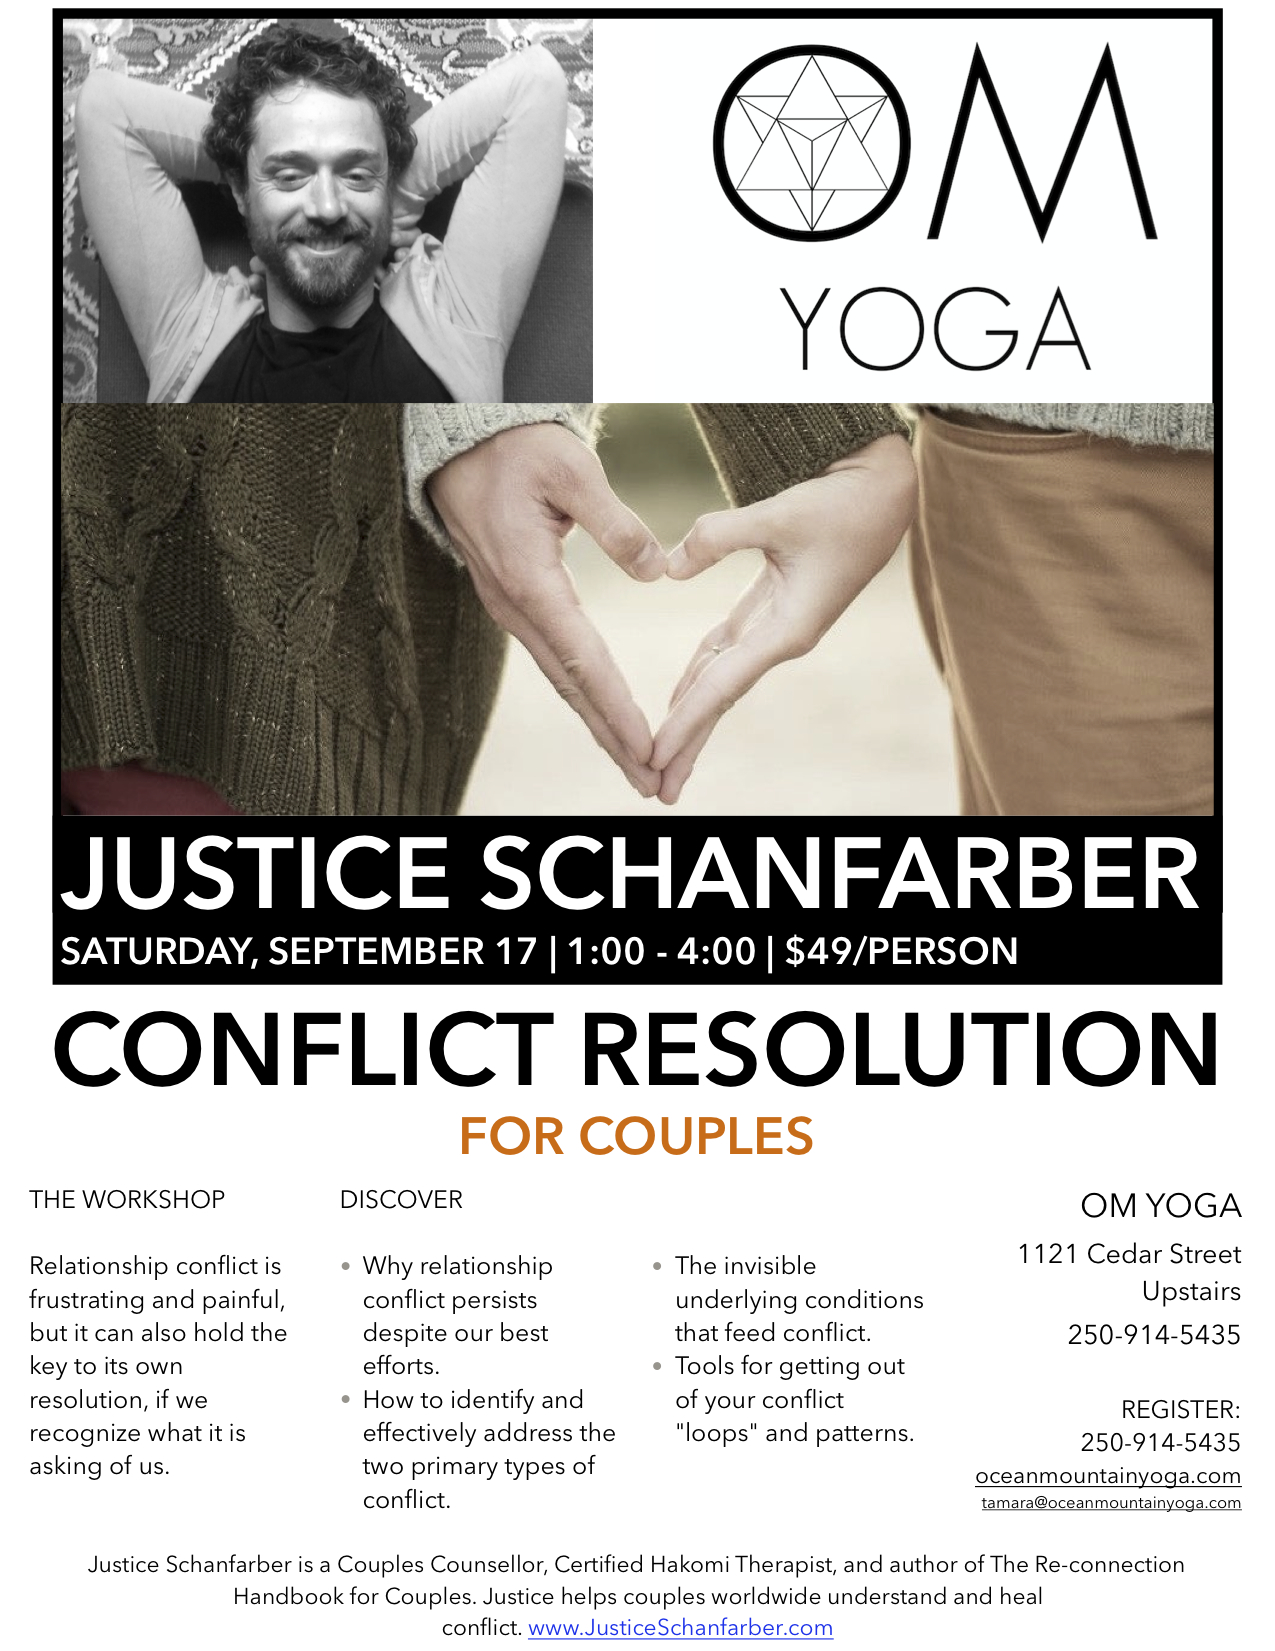 Conflict Resolution for Couples - Campbell River Workshop